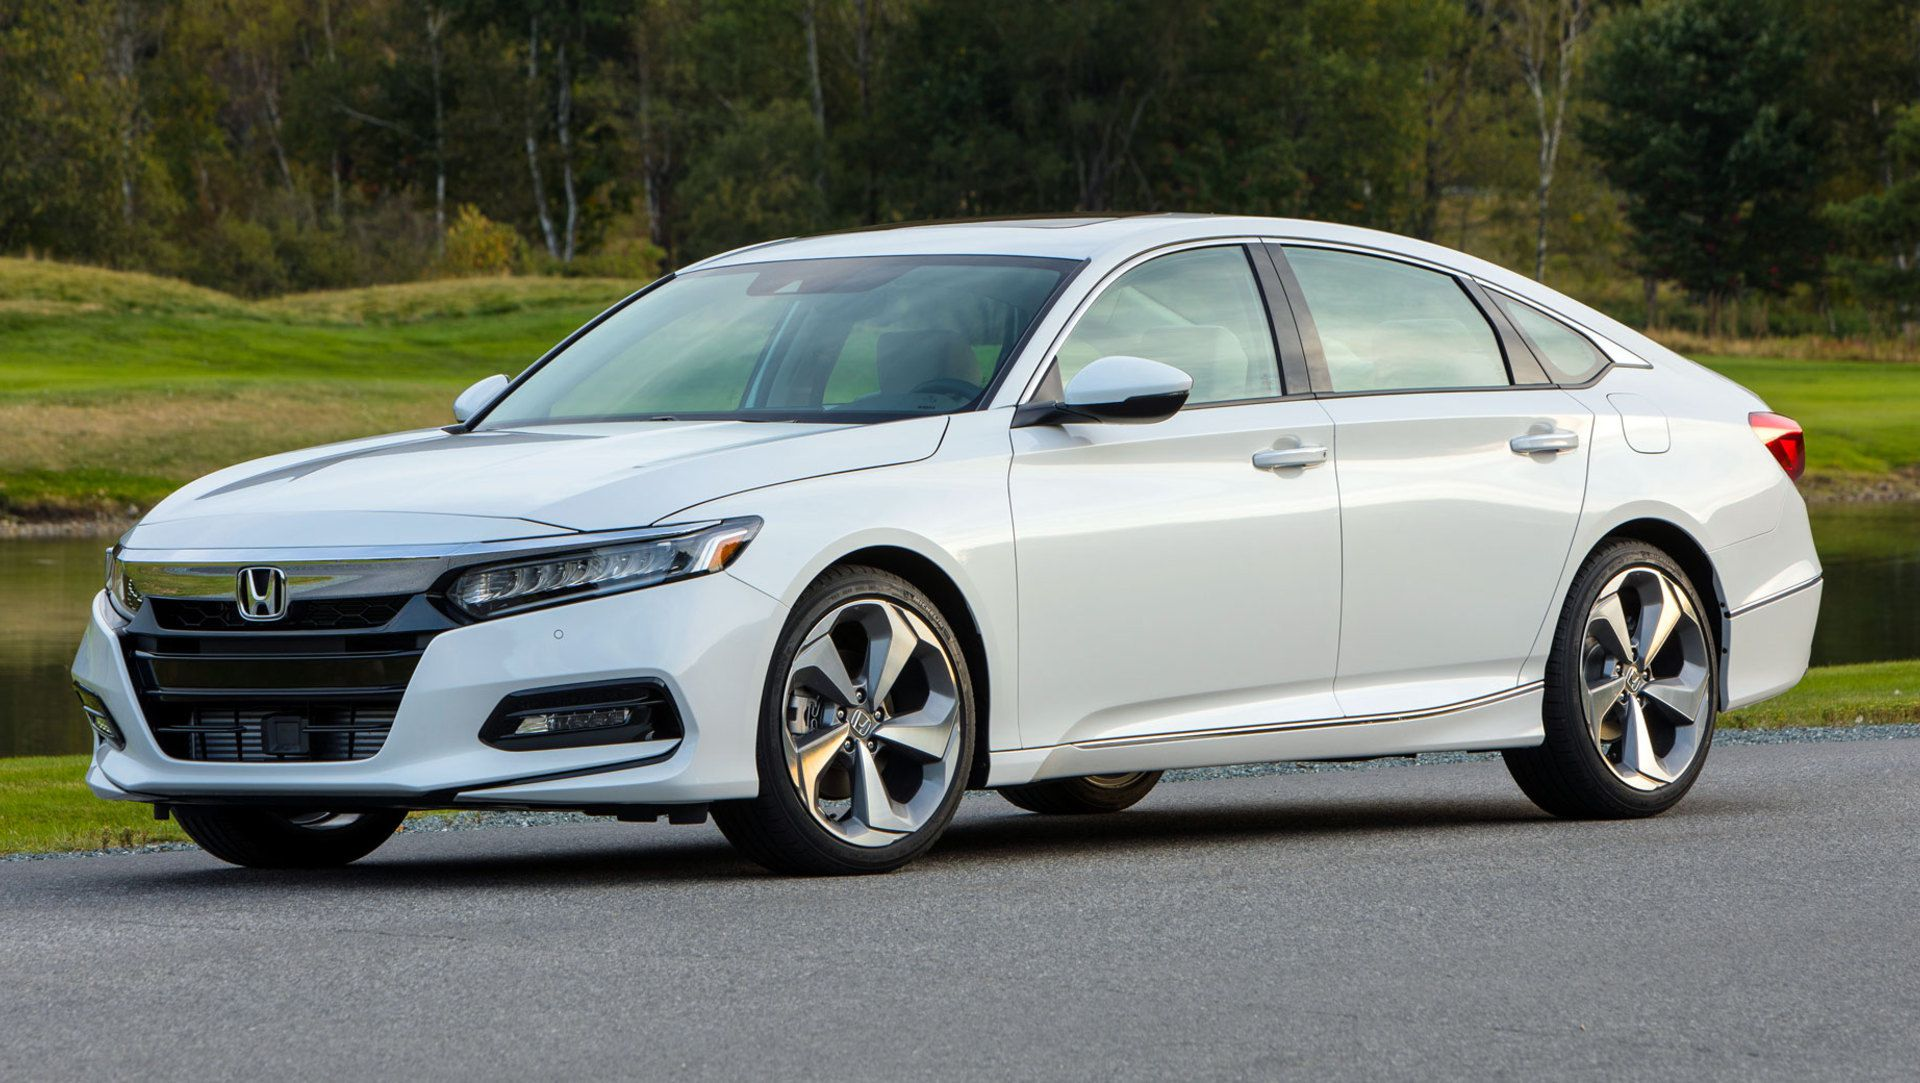 Honda Dealers Struggling To Sell 2018 Accord Due To Poor Lease